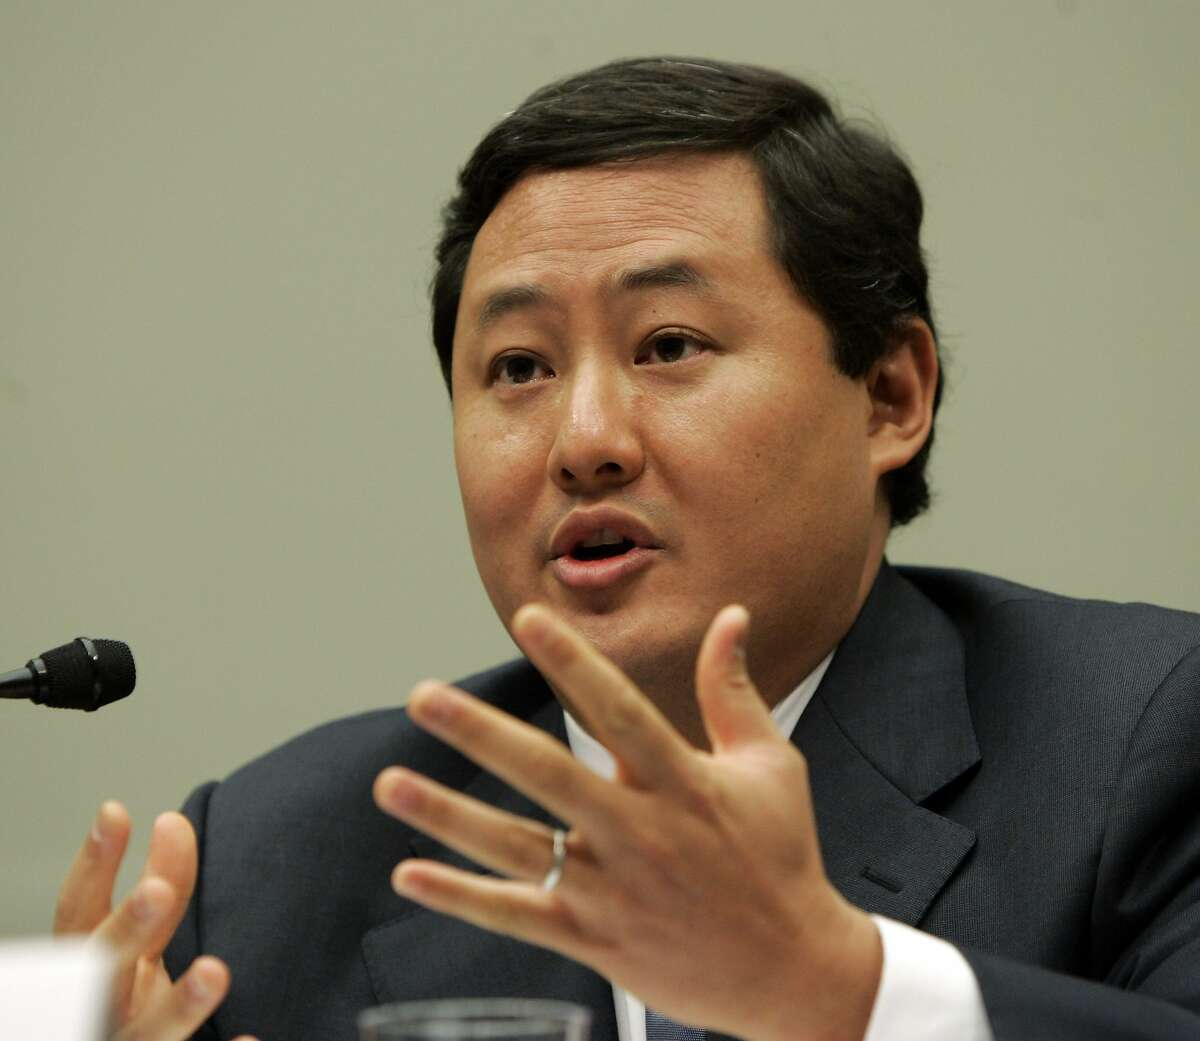 File - John Yoo, a law professor at the University of California at Berkeley, testifies on Capitol Hill in Washington, in this Thursday, June 26, 2008 file photo. A forthcoming government ethics report initially concluded the two key authors of the so-called torture memos, Jay Bybee and Yoo, who were officials in the Justice Department's Office of Legal Counsel during the Bush administration, had violated their professional obligations as lawyers when they crafted the memos that allowed the use of harsh interrogation tactics.